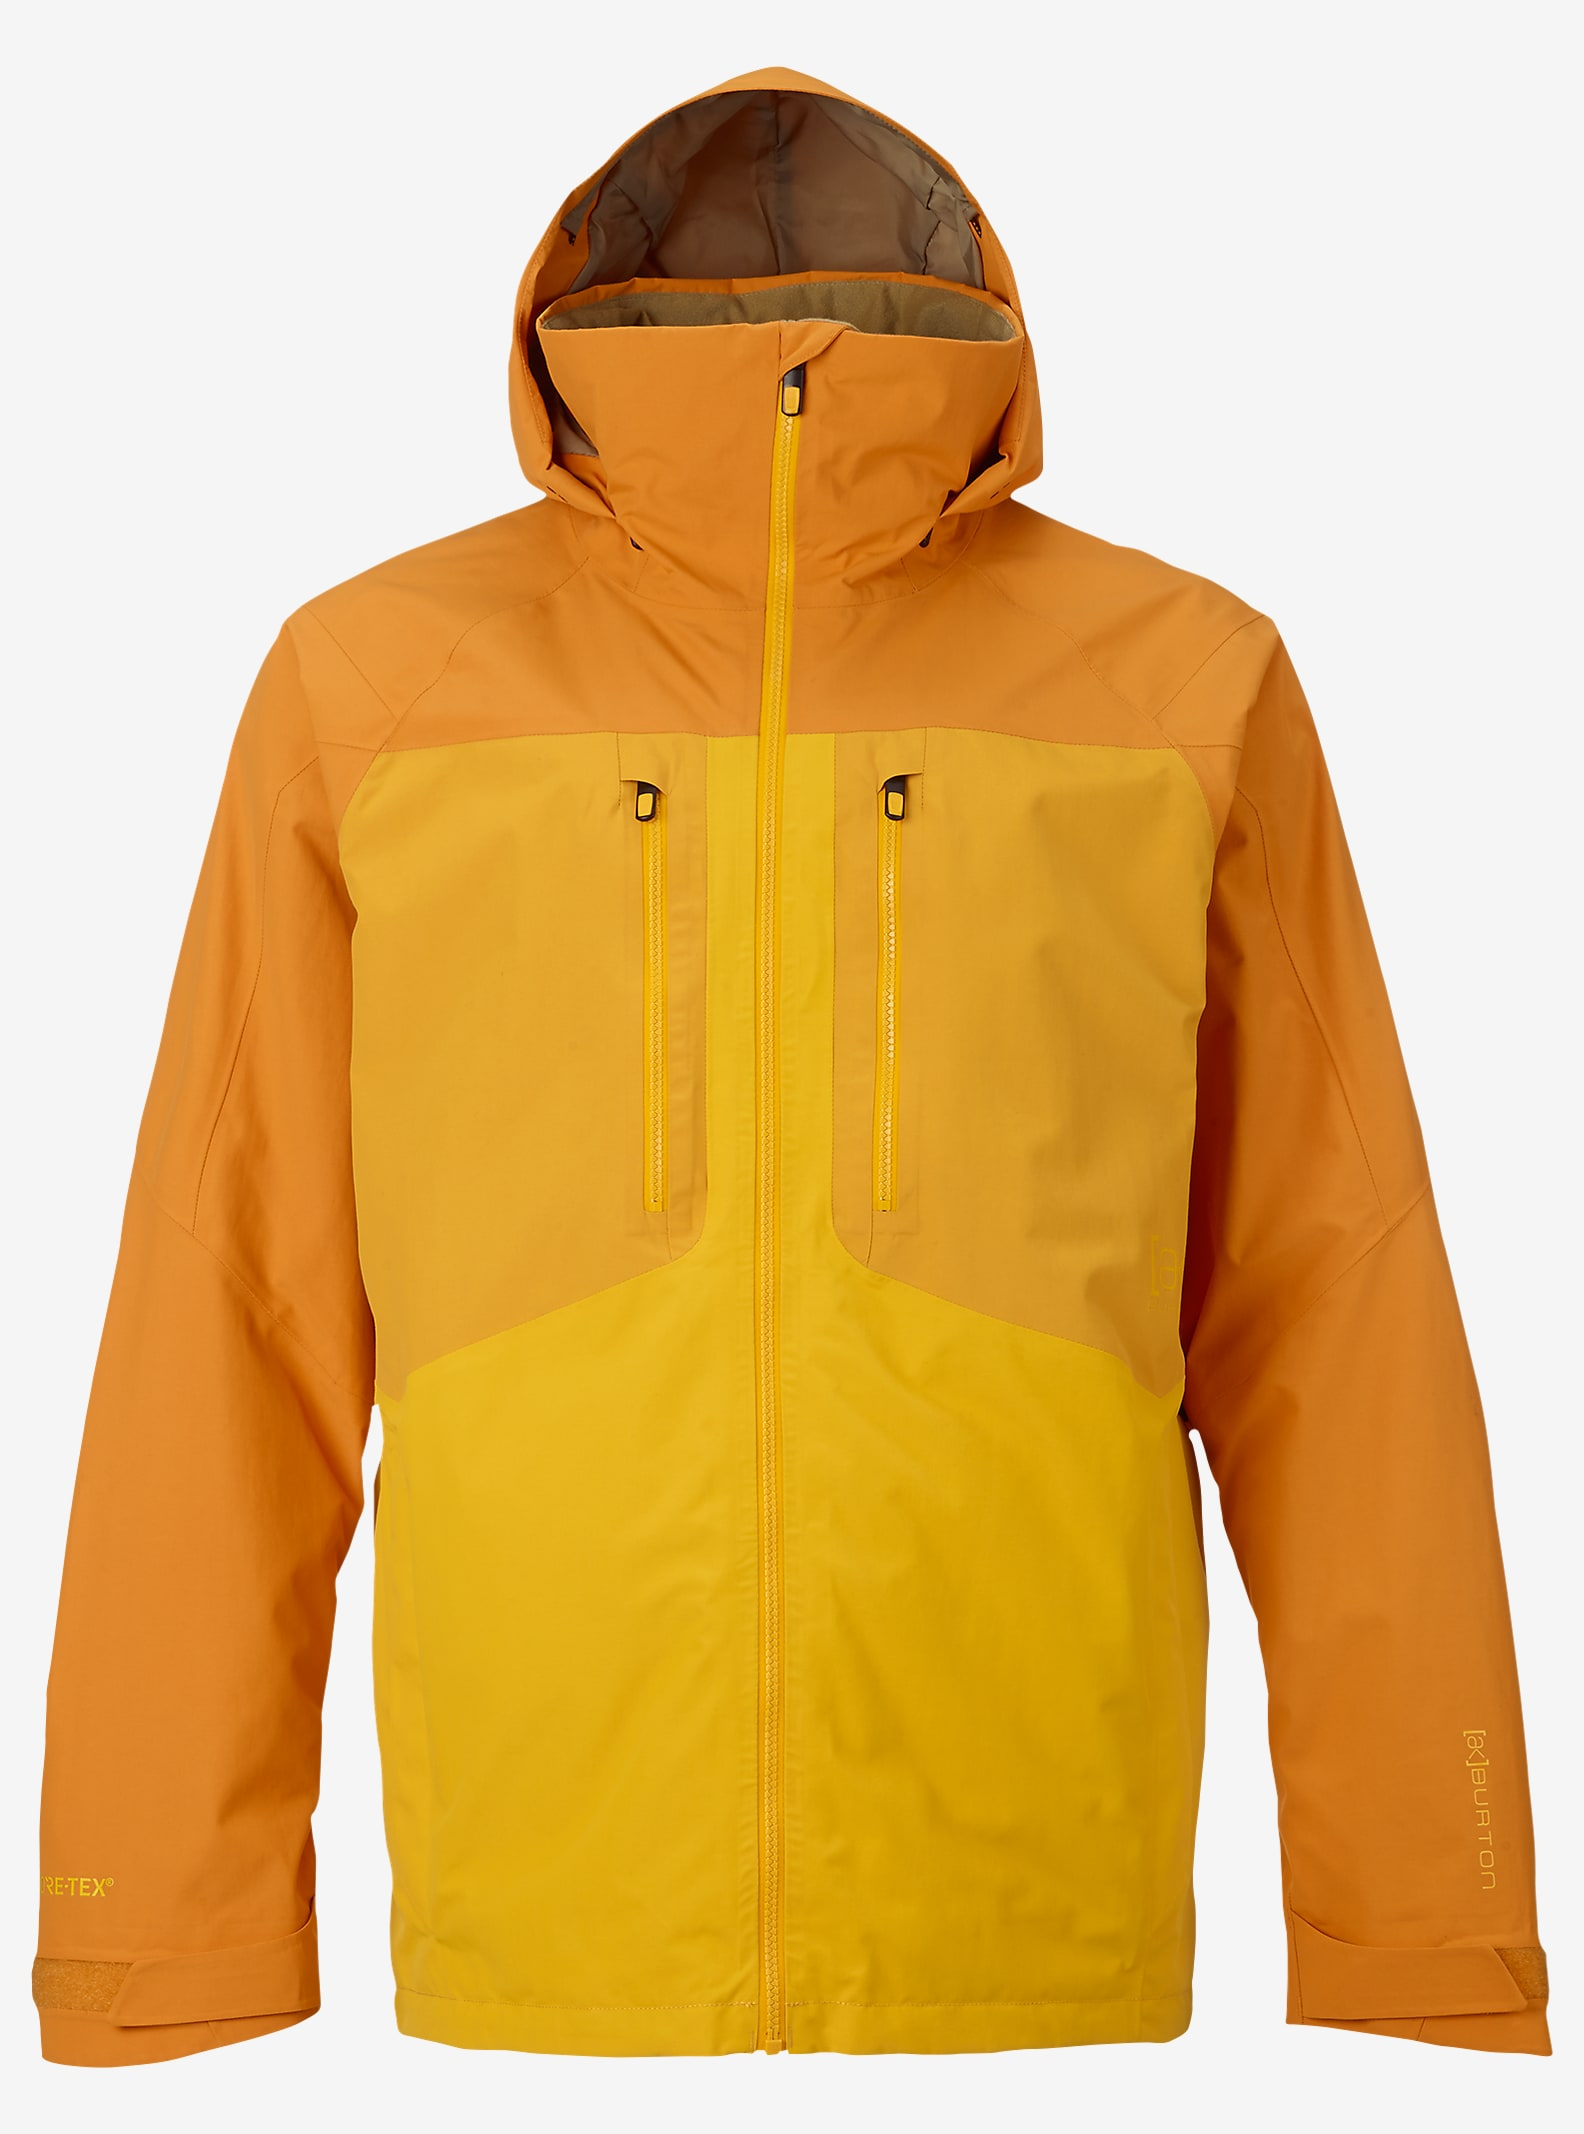 Burton [ak] 2L Swash Jacket shown in Flashback / Burnout / Tripper